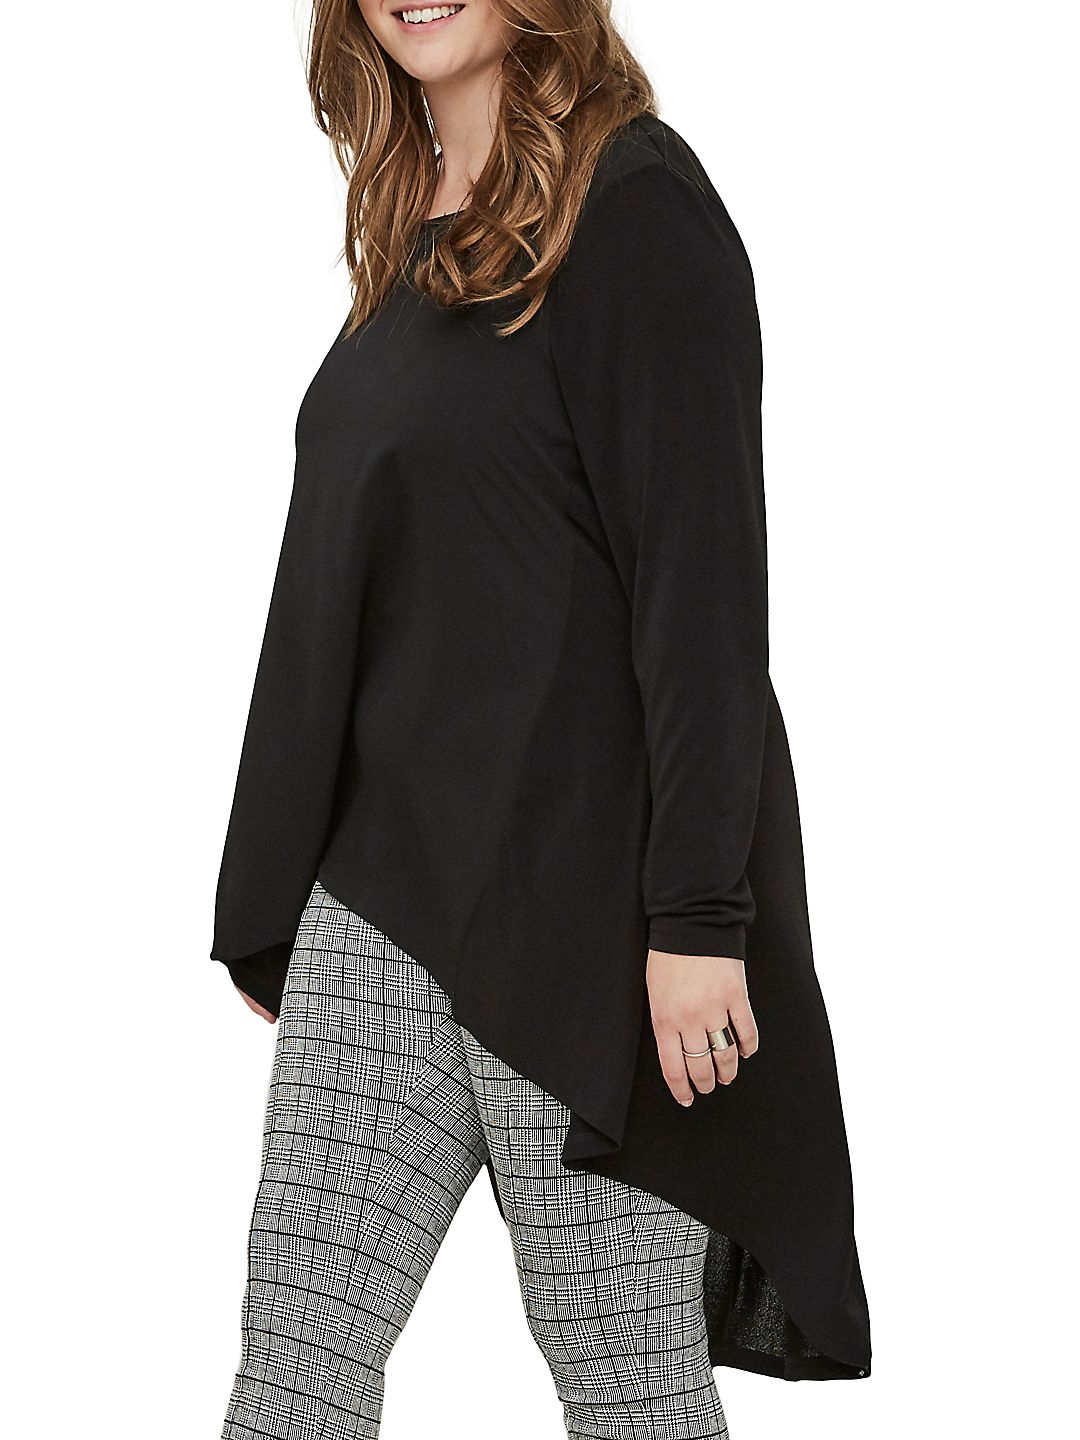 Plus 518 Piber Long-Sleeve Top